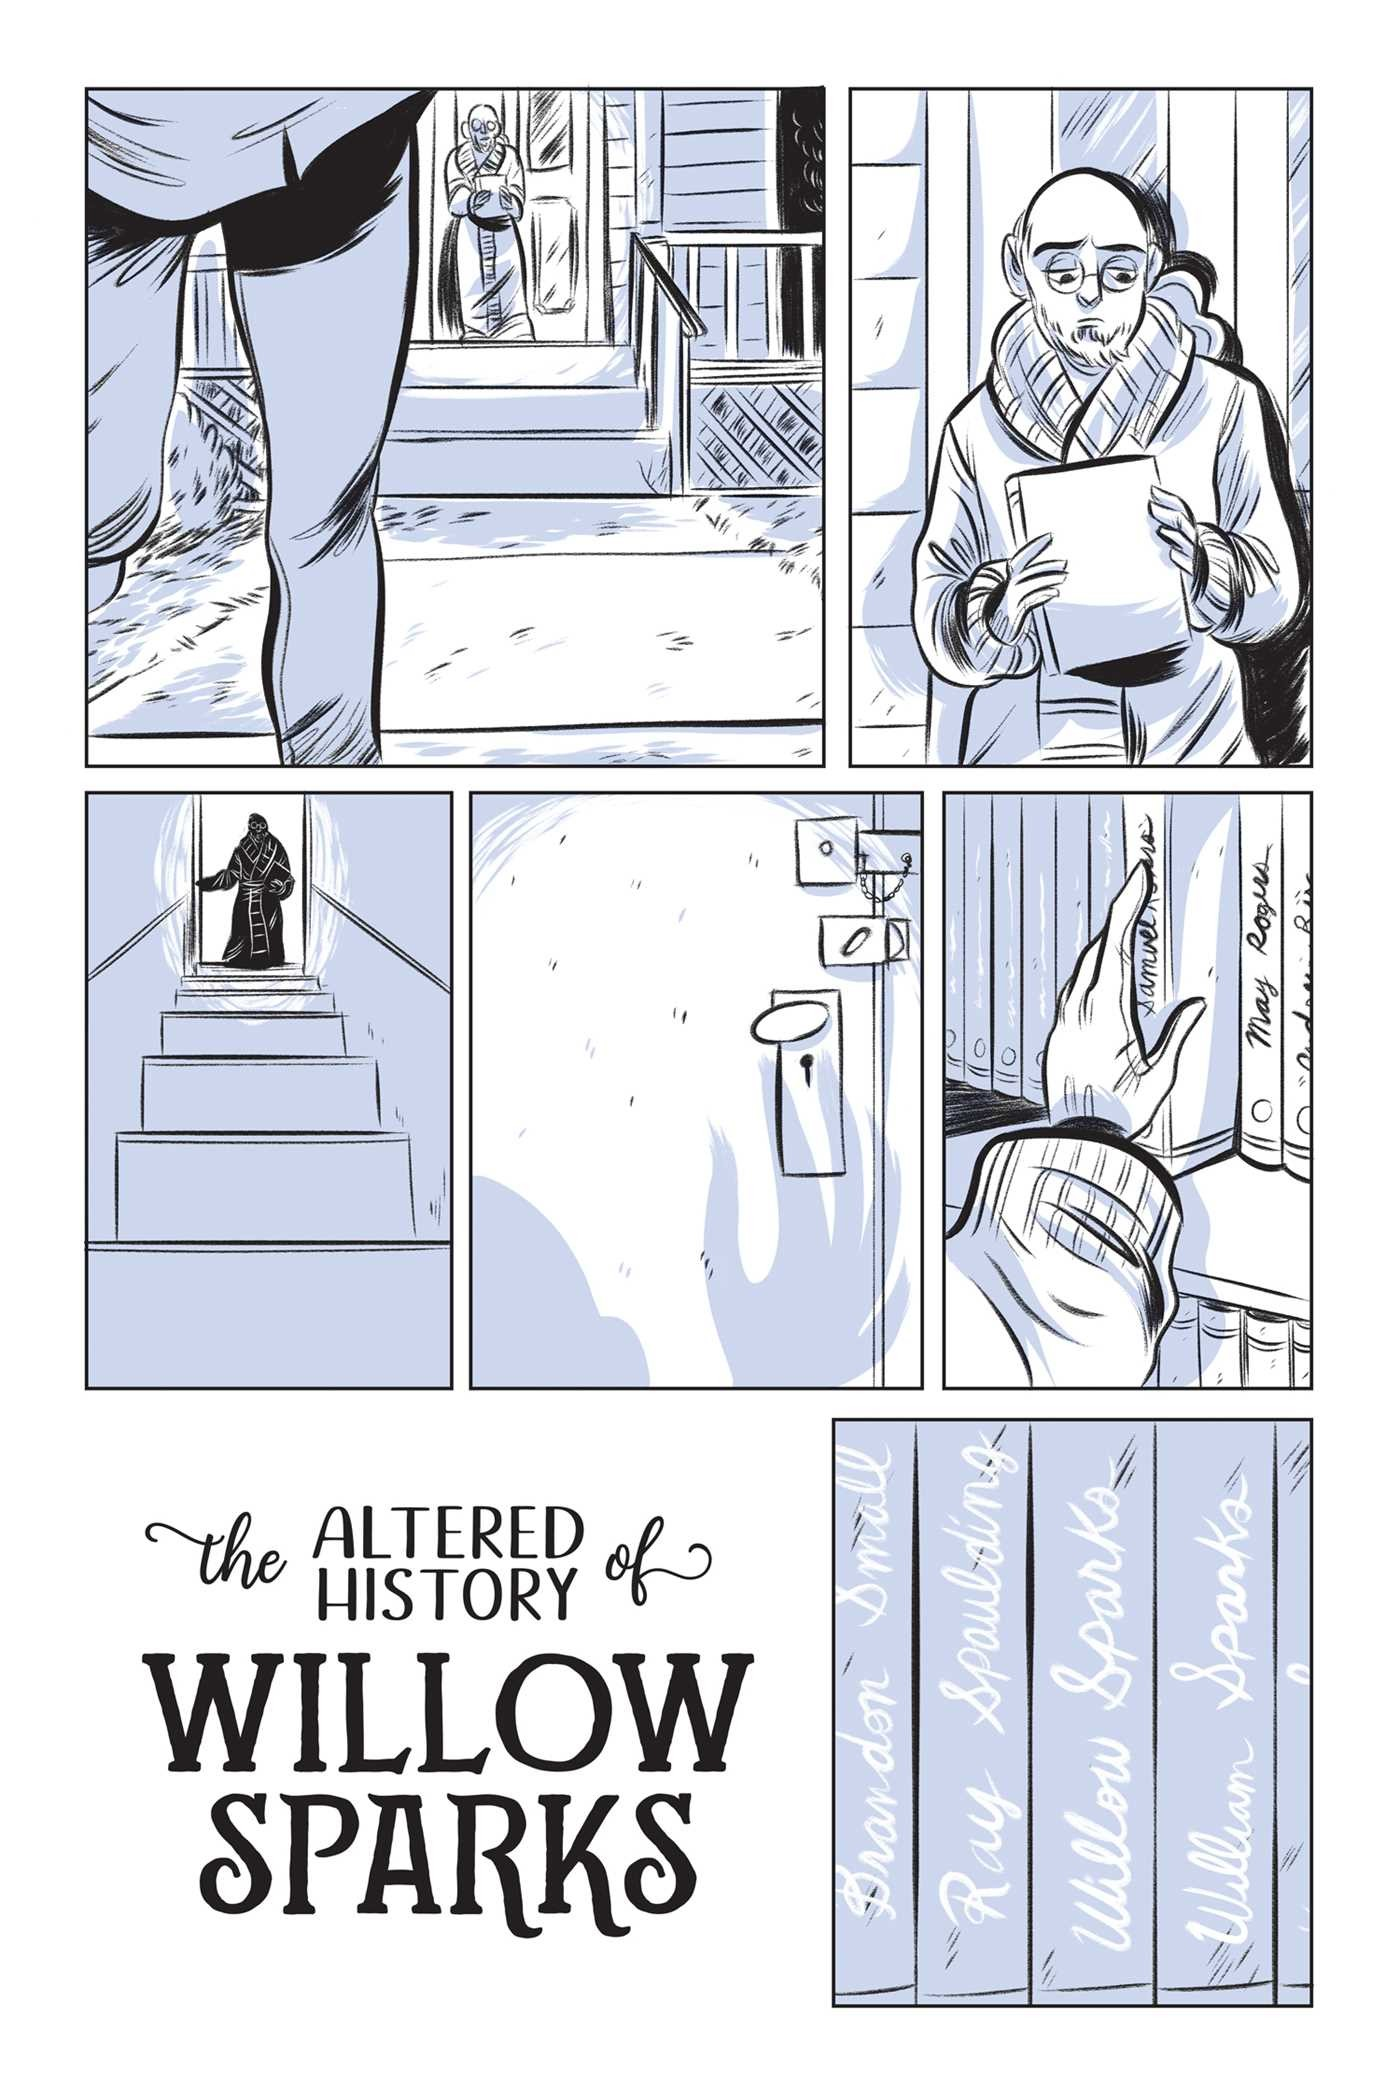 The altered history of willow sparks 9781620104507.in03